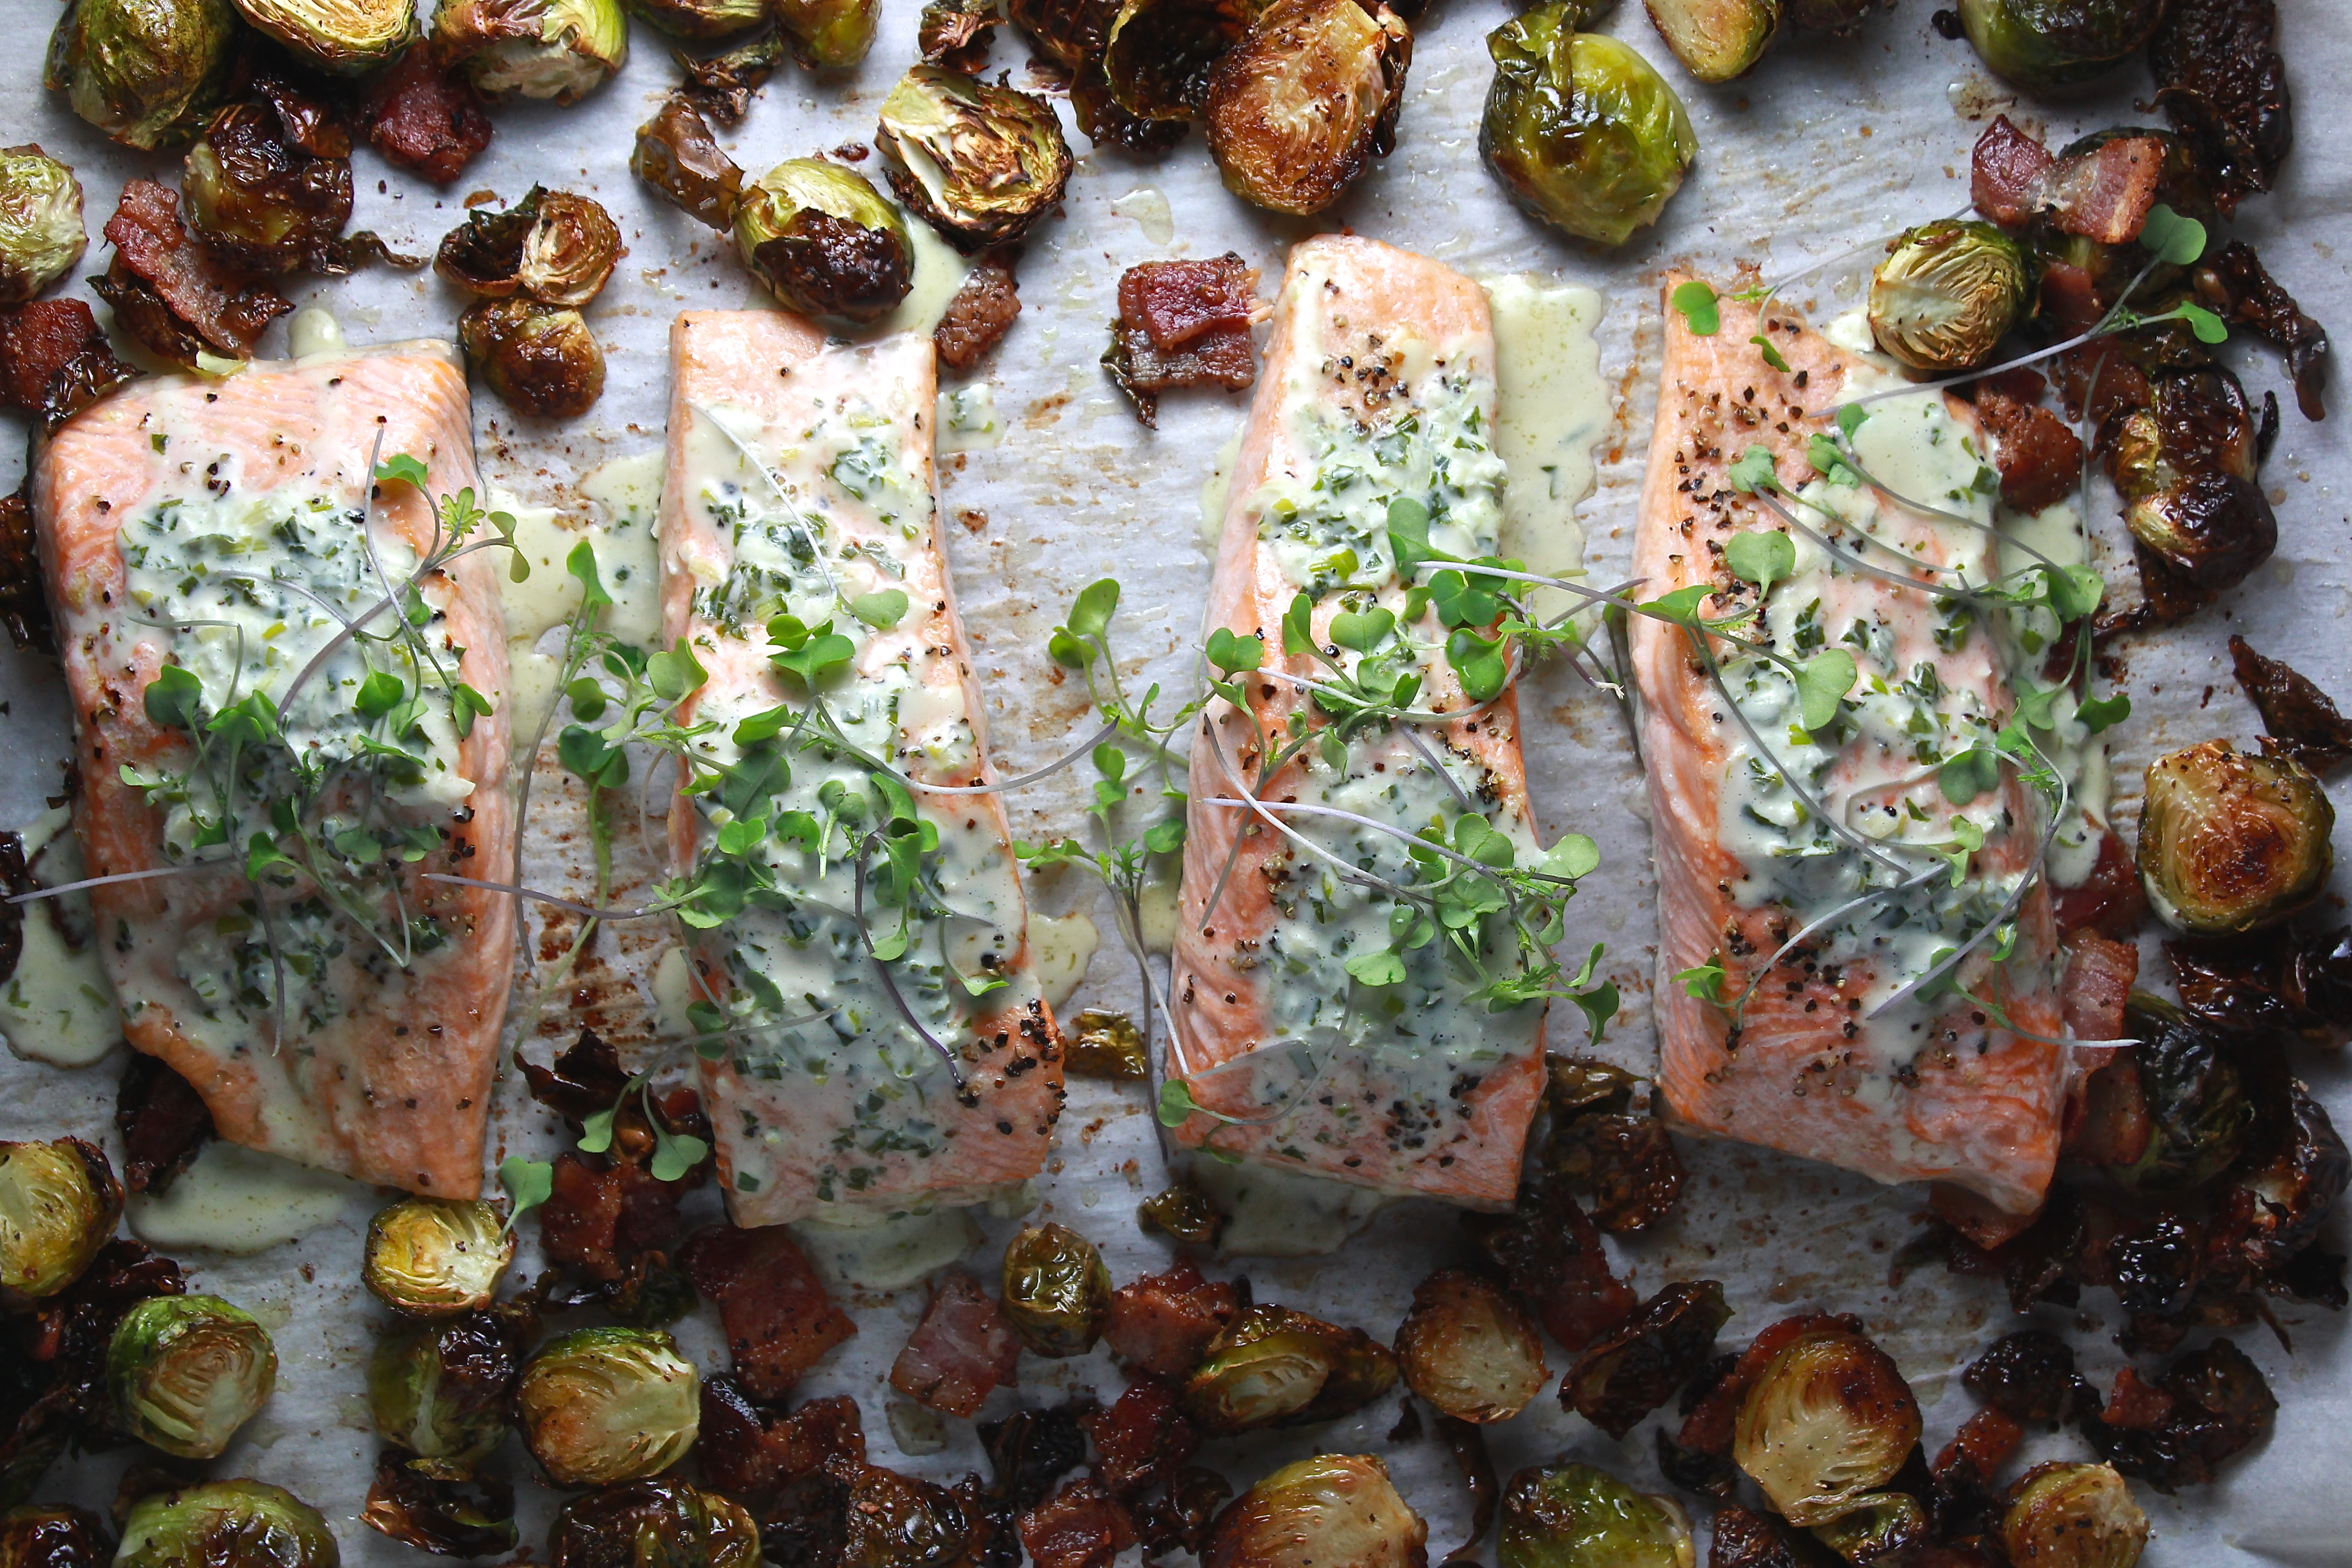 Sheet Pan Green Goddess Salmon with Bacony Brussels Sprouts